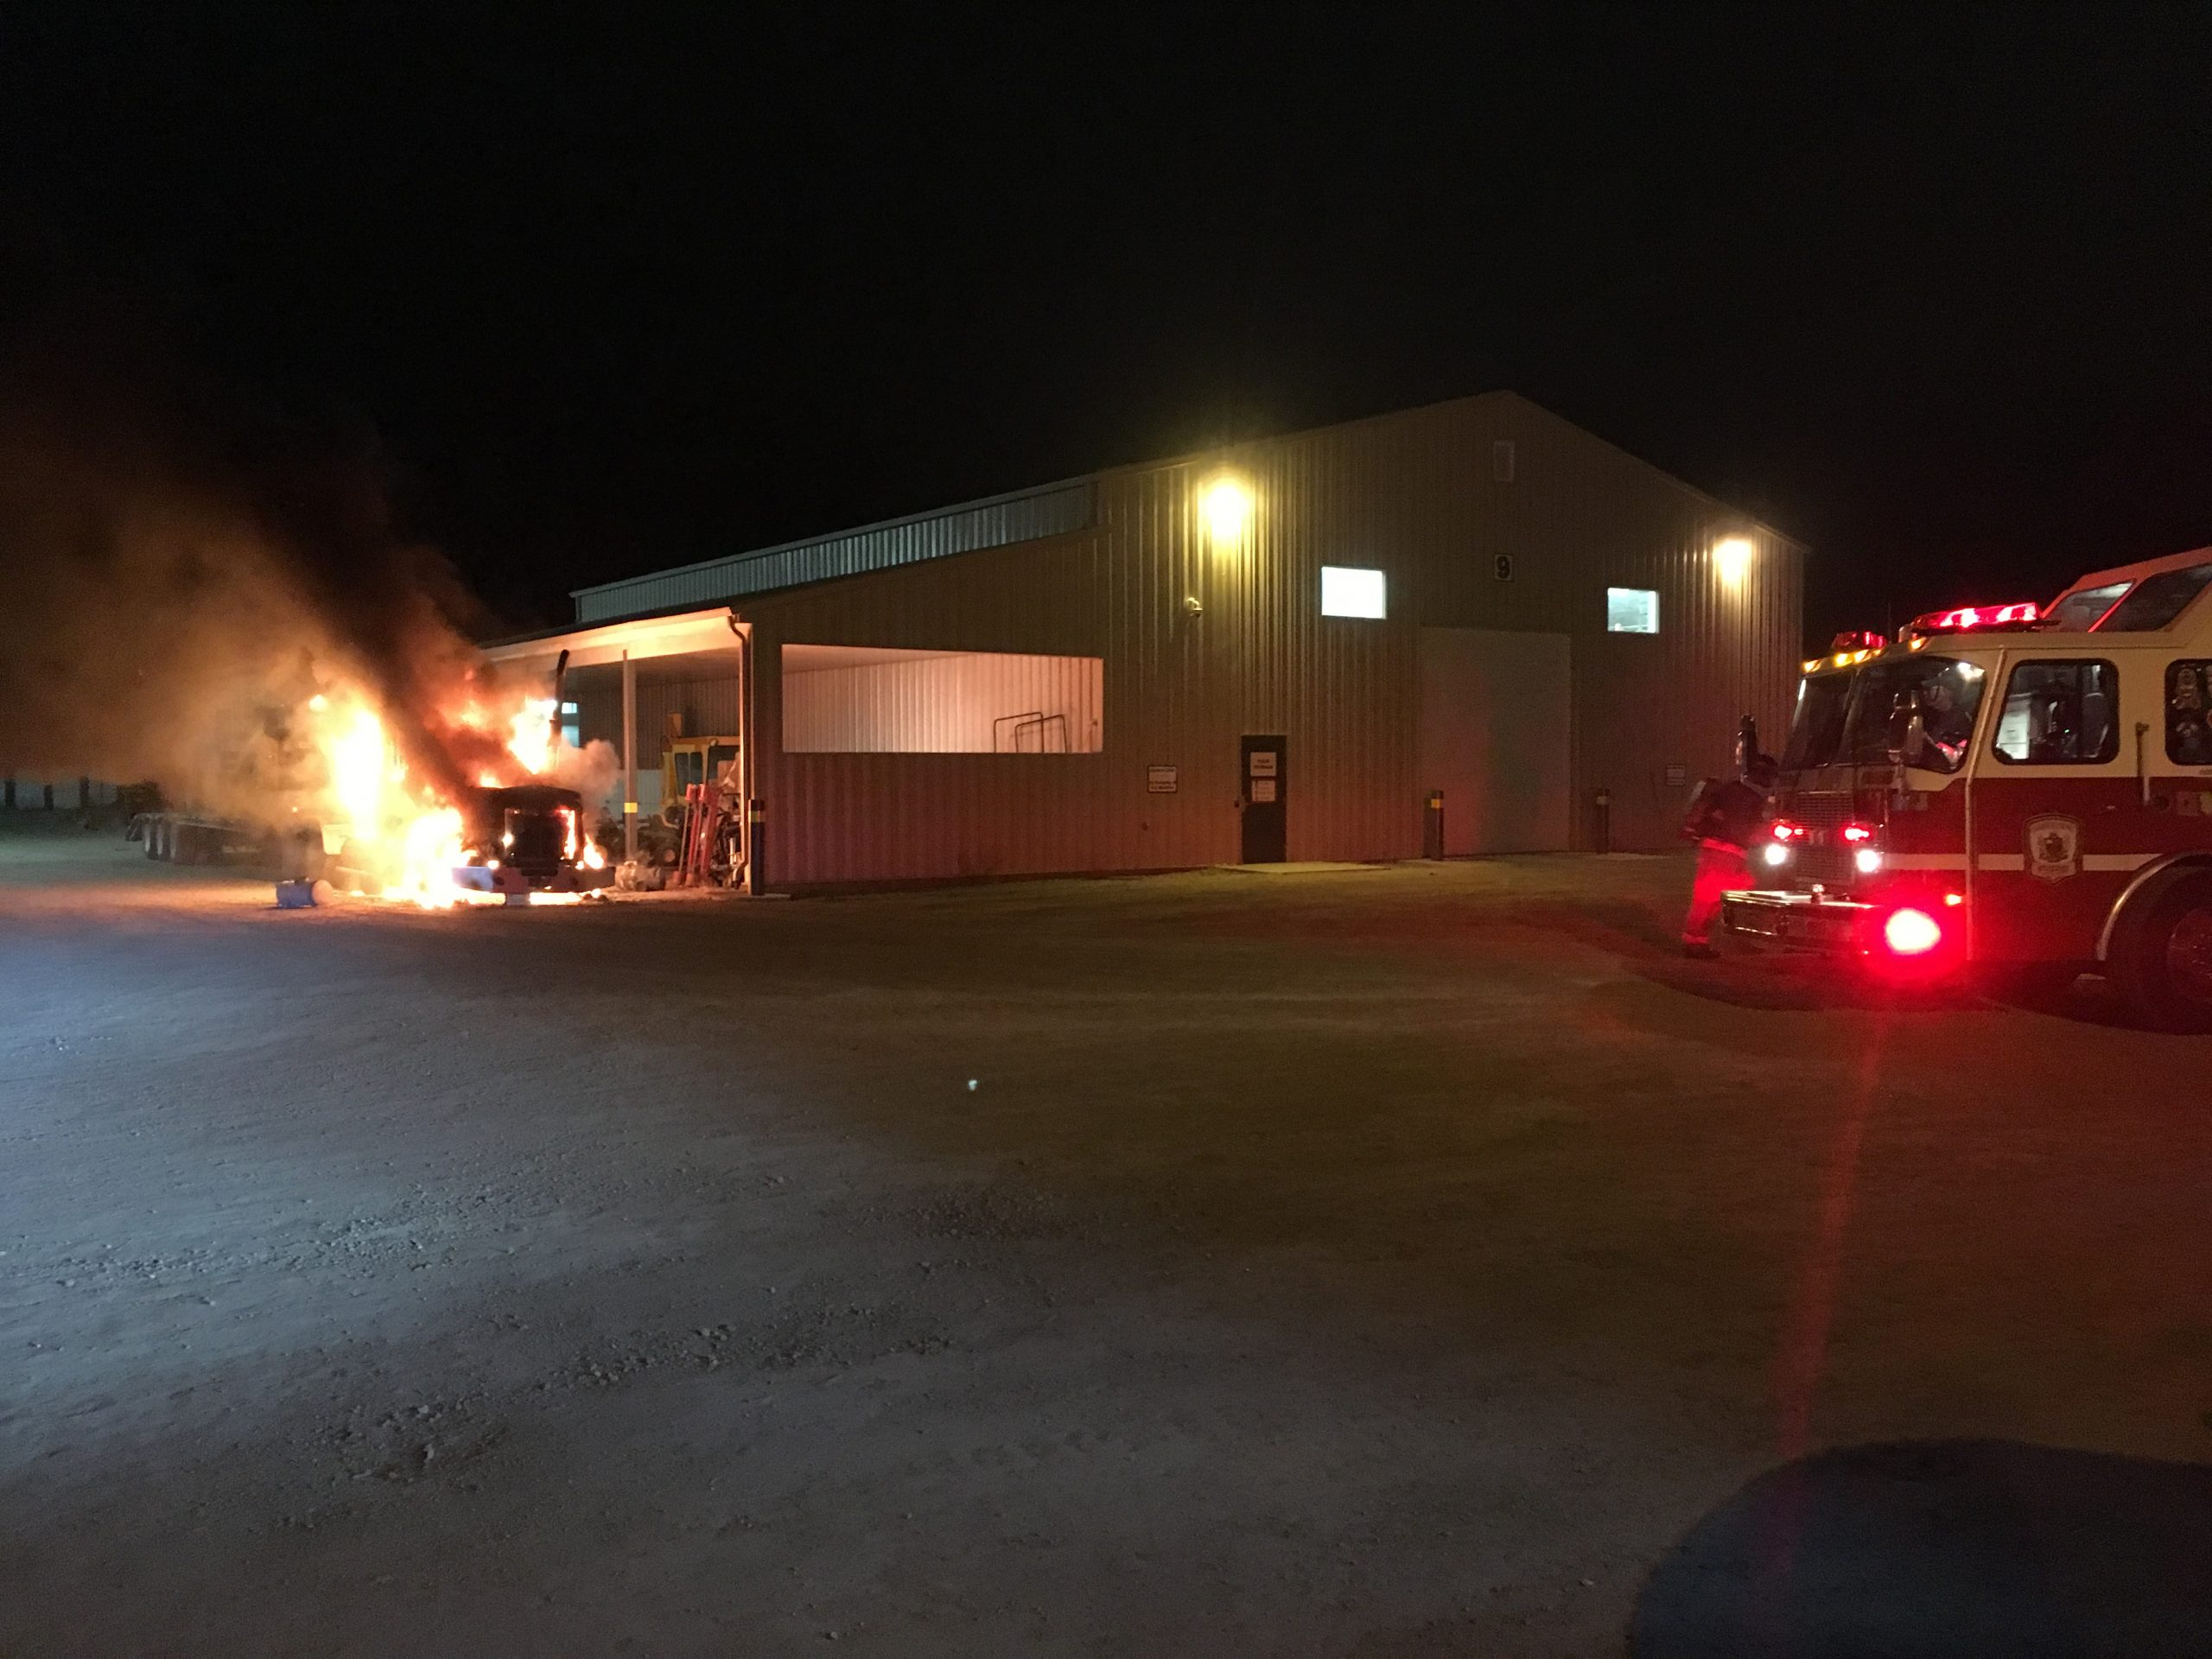 Semi Catches Fire in Locked Compound